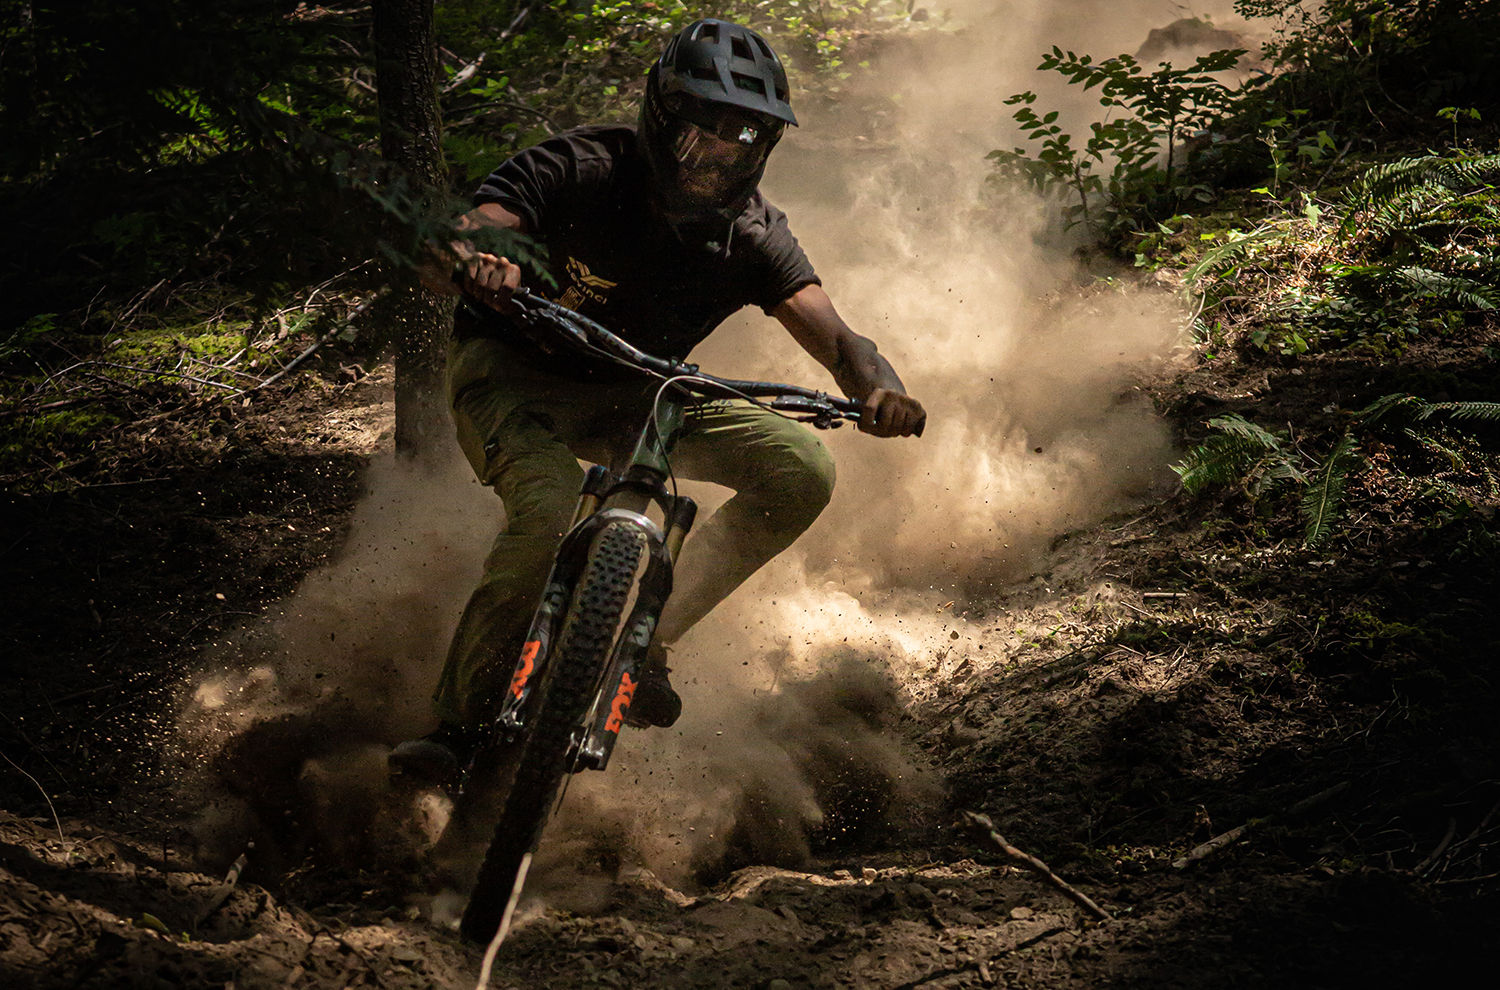 Steve Vanderhoek just put out one of the best video edits of the year, in which he and Yoann Barelli set out to ride as many of the gnarliest features in the Sea to Sky Corridor in one truly wild day. So this week on Bikes & Big Ideas, we sat down with Steve to talk about everything that went into making that day happen; the mental challenges of riding scary, high-consequence lines; filming and riding with Yoann and Remy Metailler; balancing all that with his career as a paramedic and firefighter; and a whole lot more.